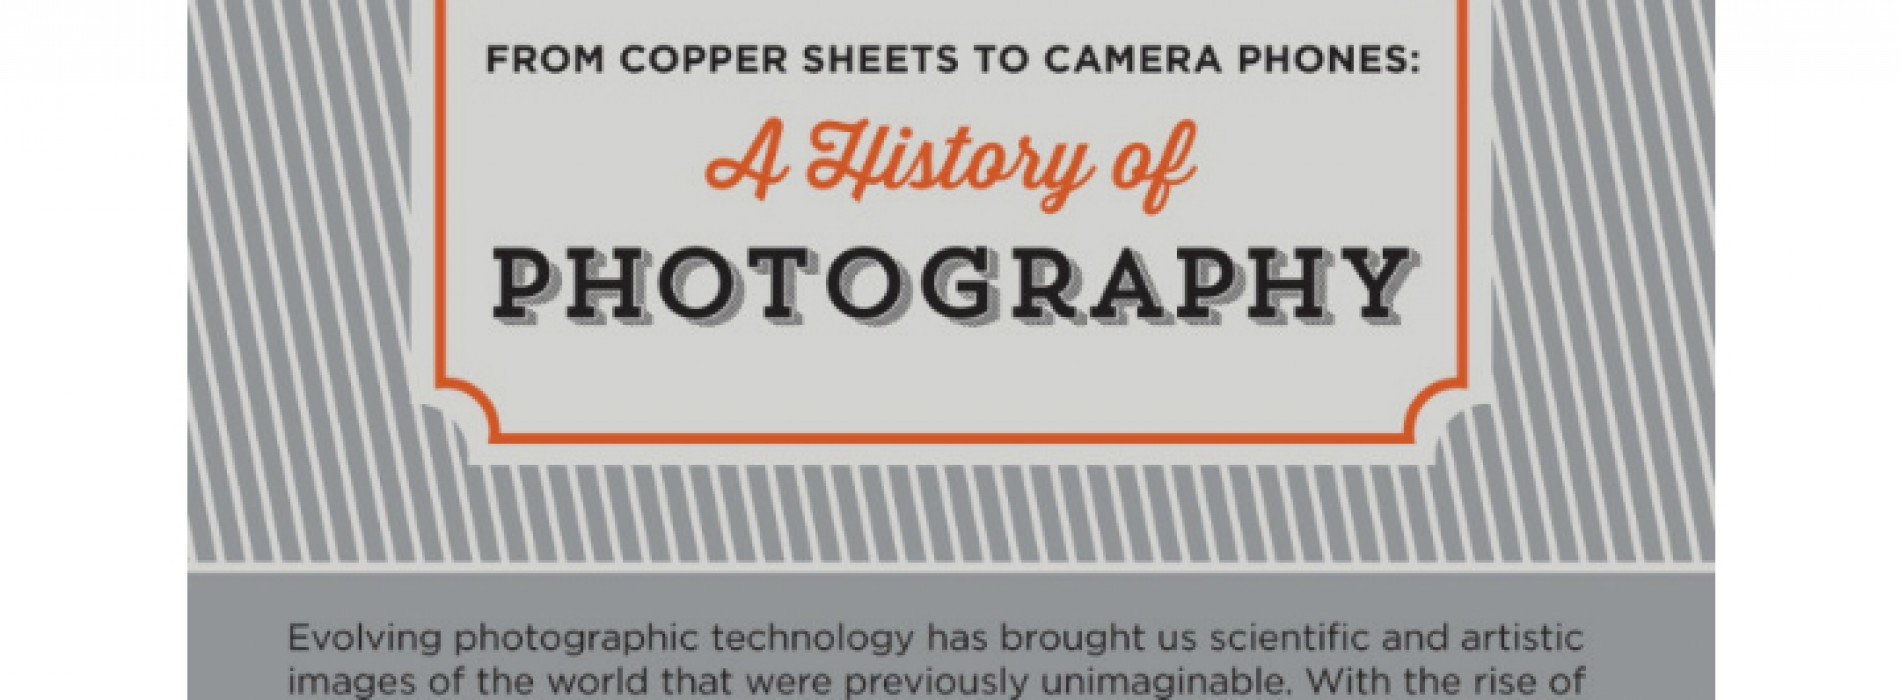 HTC photography infographic teases something special for 2013